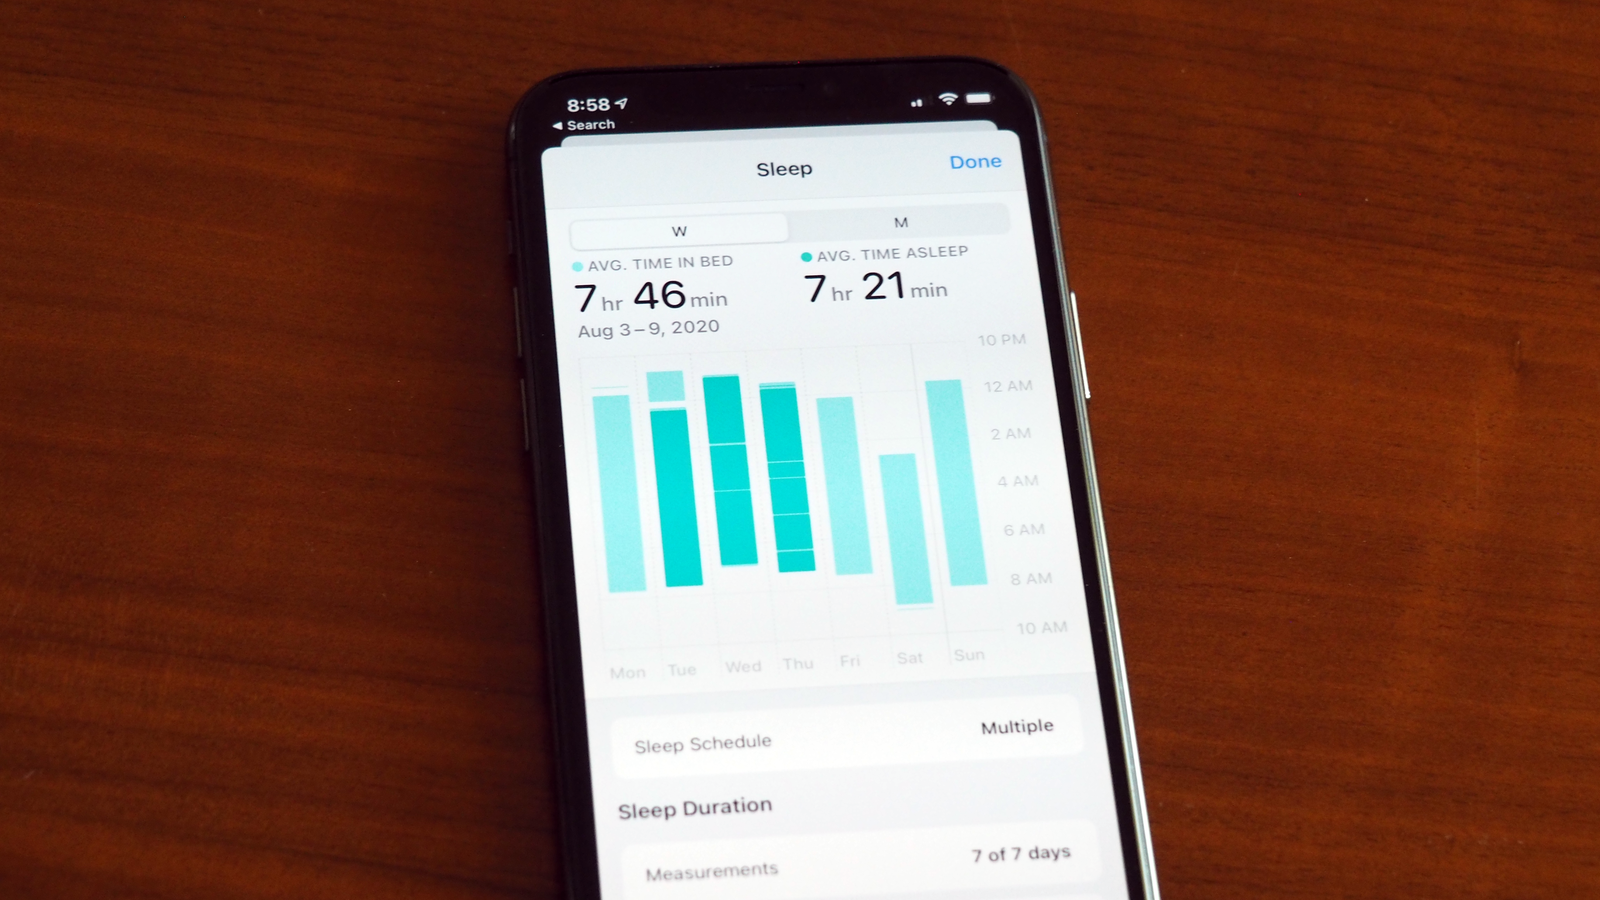 Your iPhone's Health app is where you'll see sleep breakdowns like weekly trends.